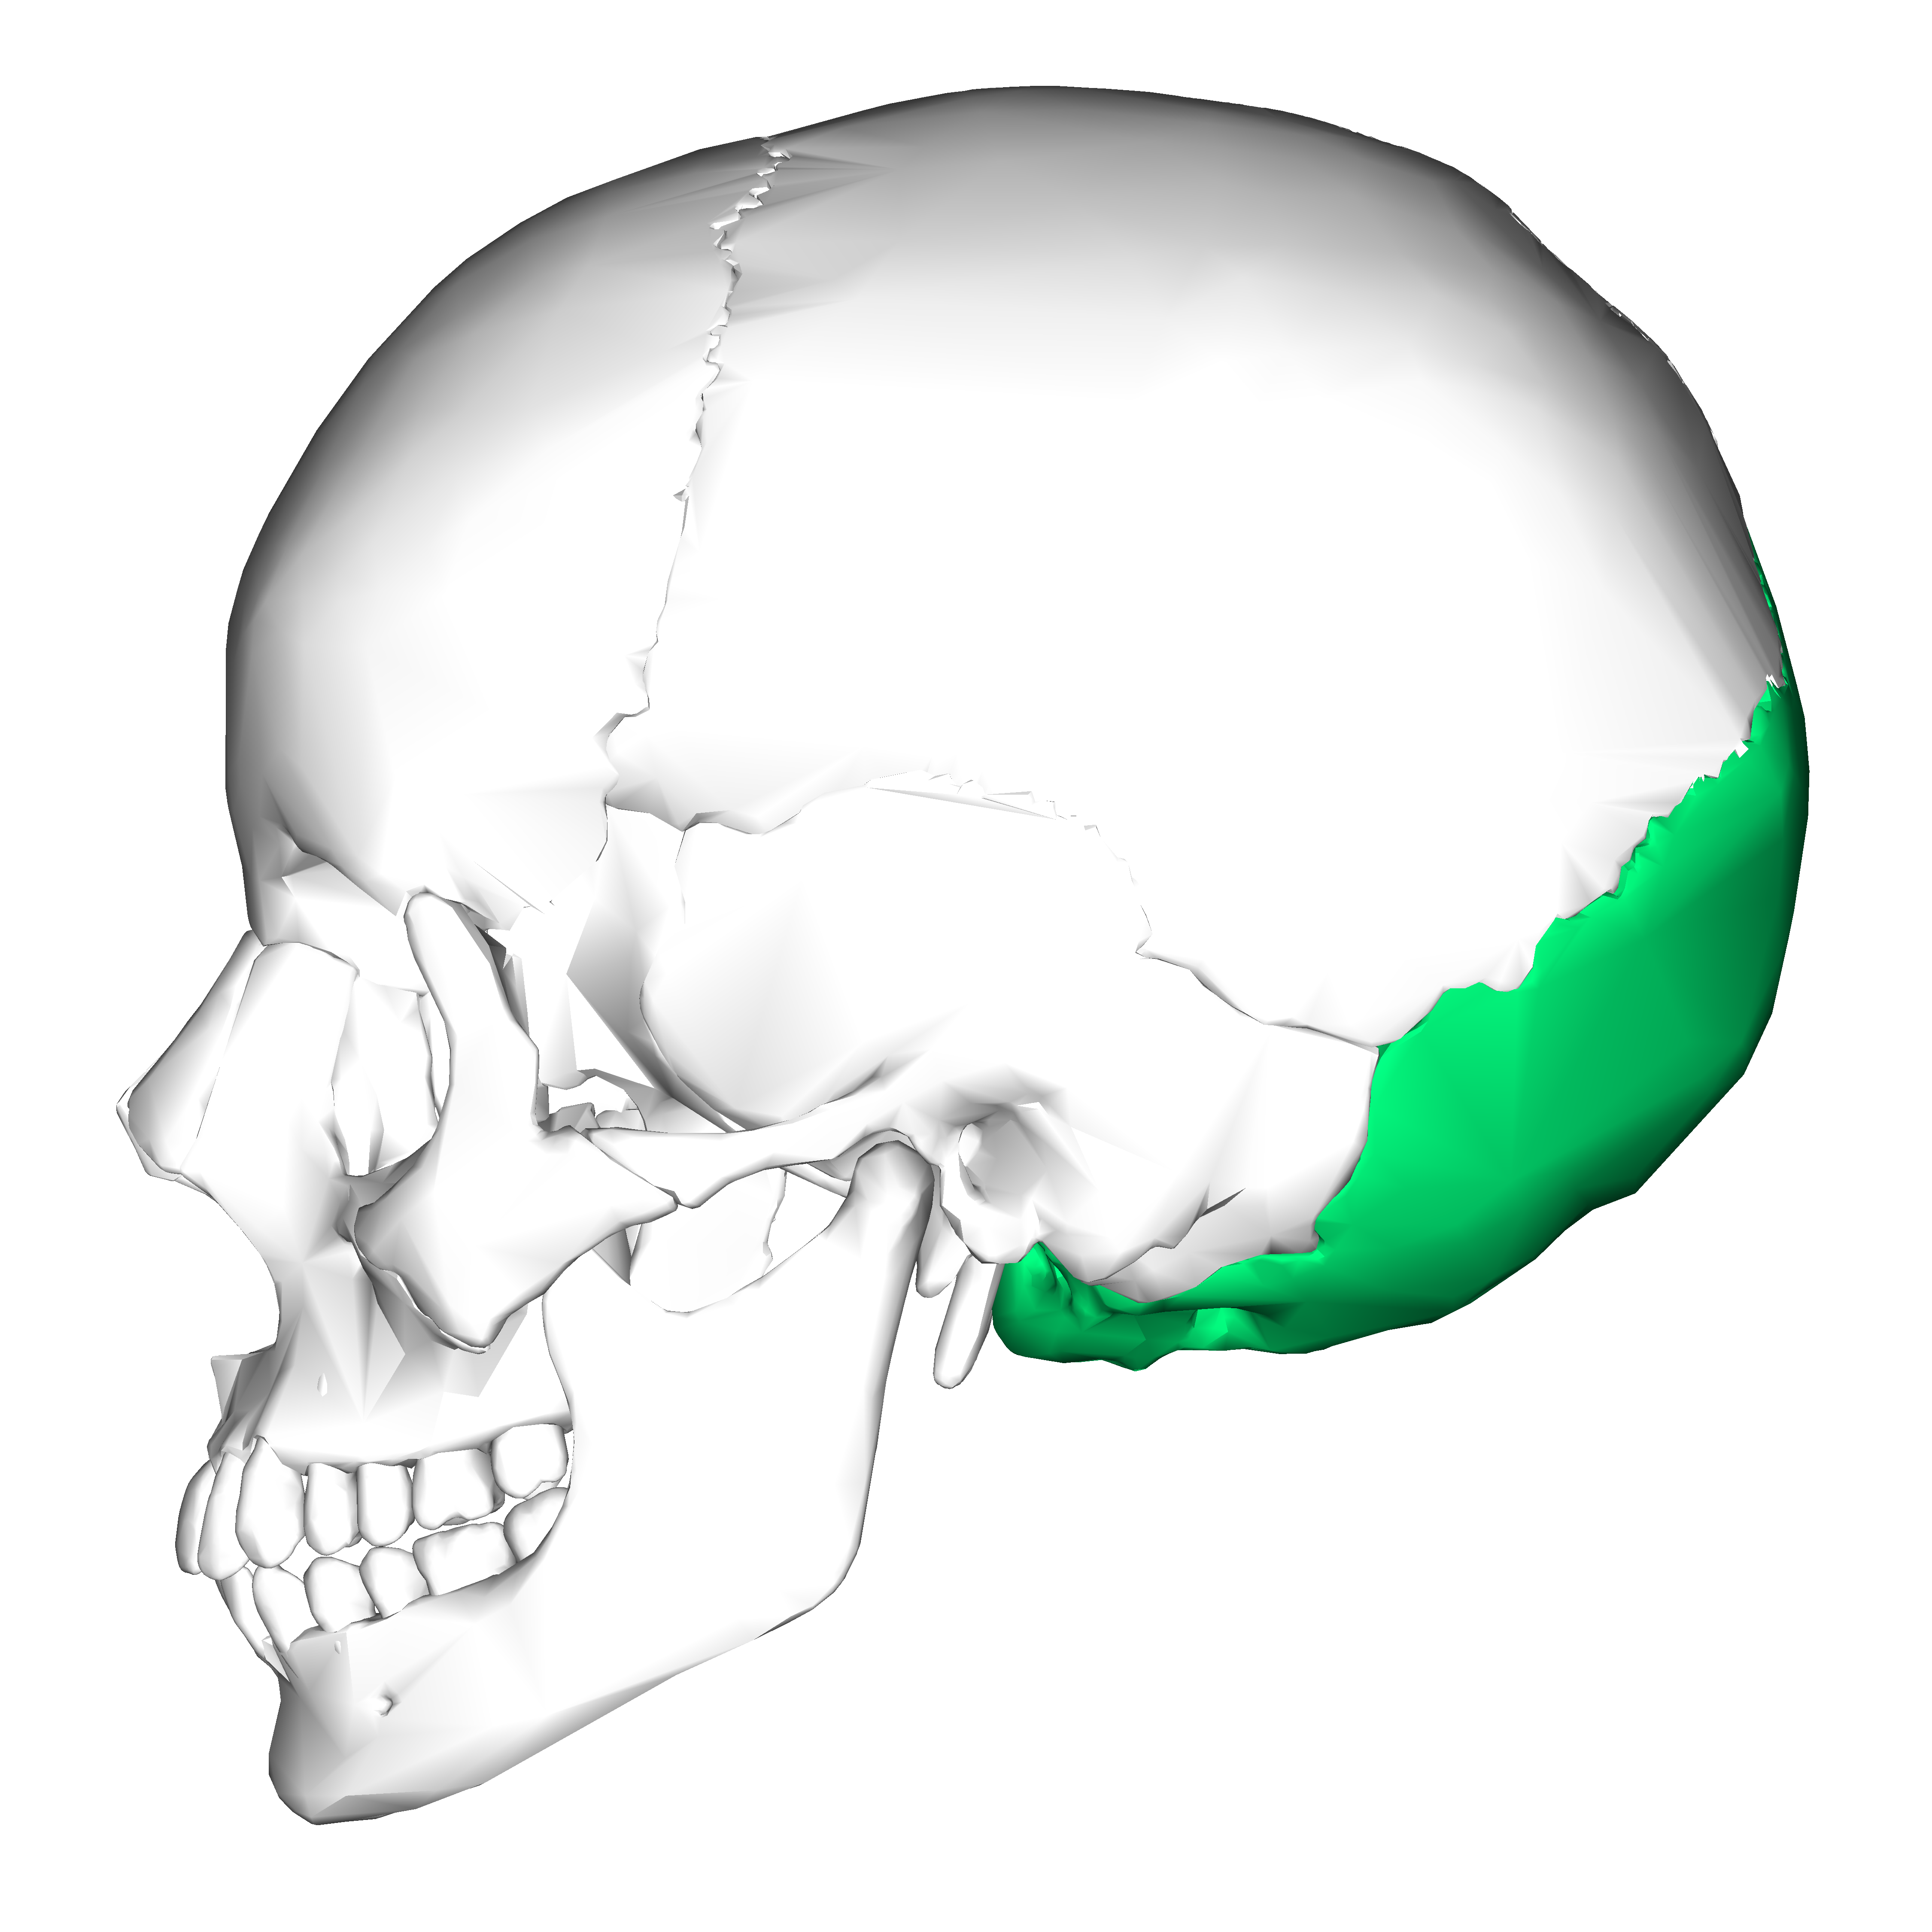 Depiction of Hueso occipital